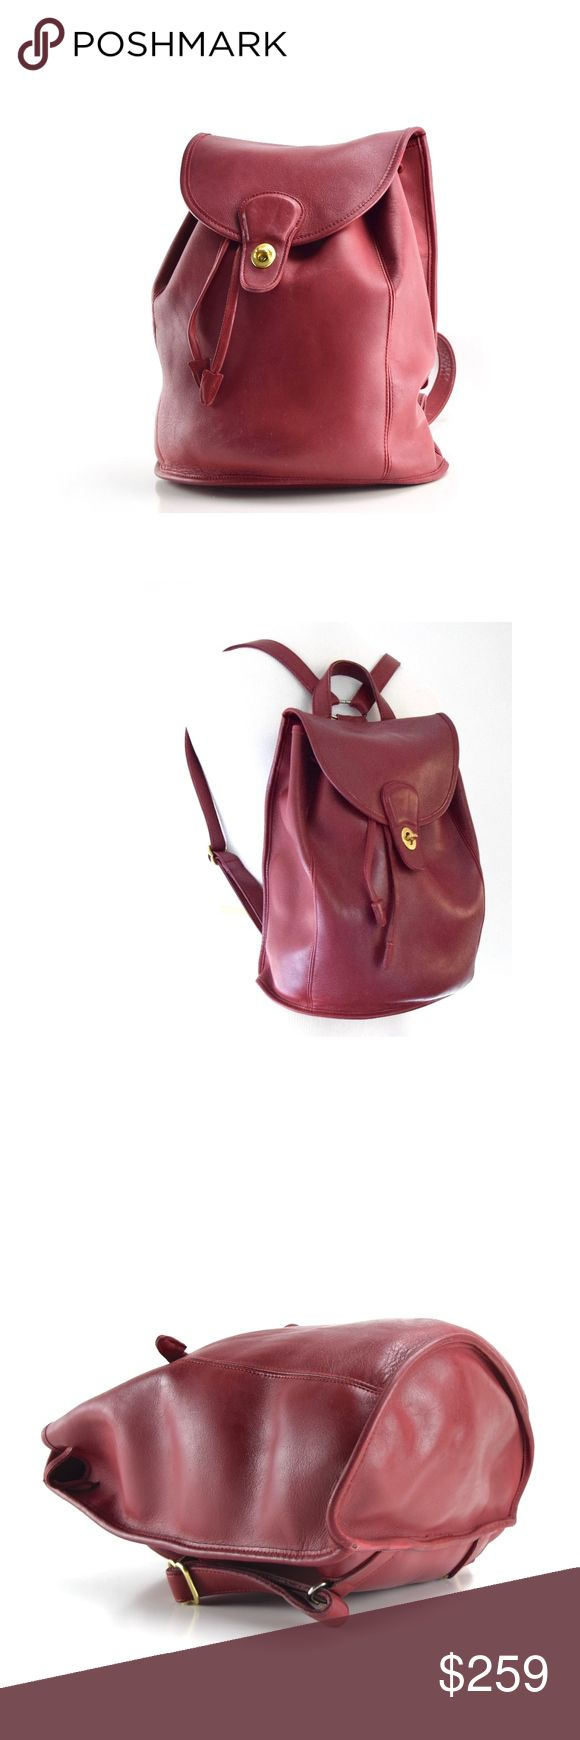 Vintage Coach Backpack Daypack Rucksack Burgundy Condition:  Very Good  Color: Burgundy Red Measurements Height: 13 inches Width: 10 inches (base) Depth: 6 inches Coach Bags Backpacks